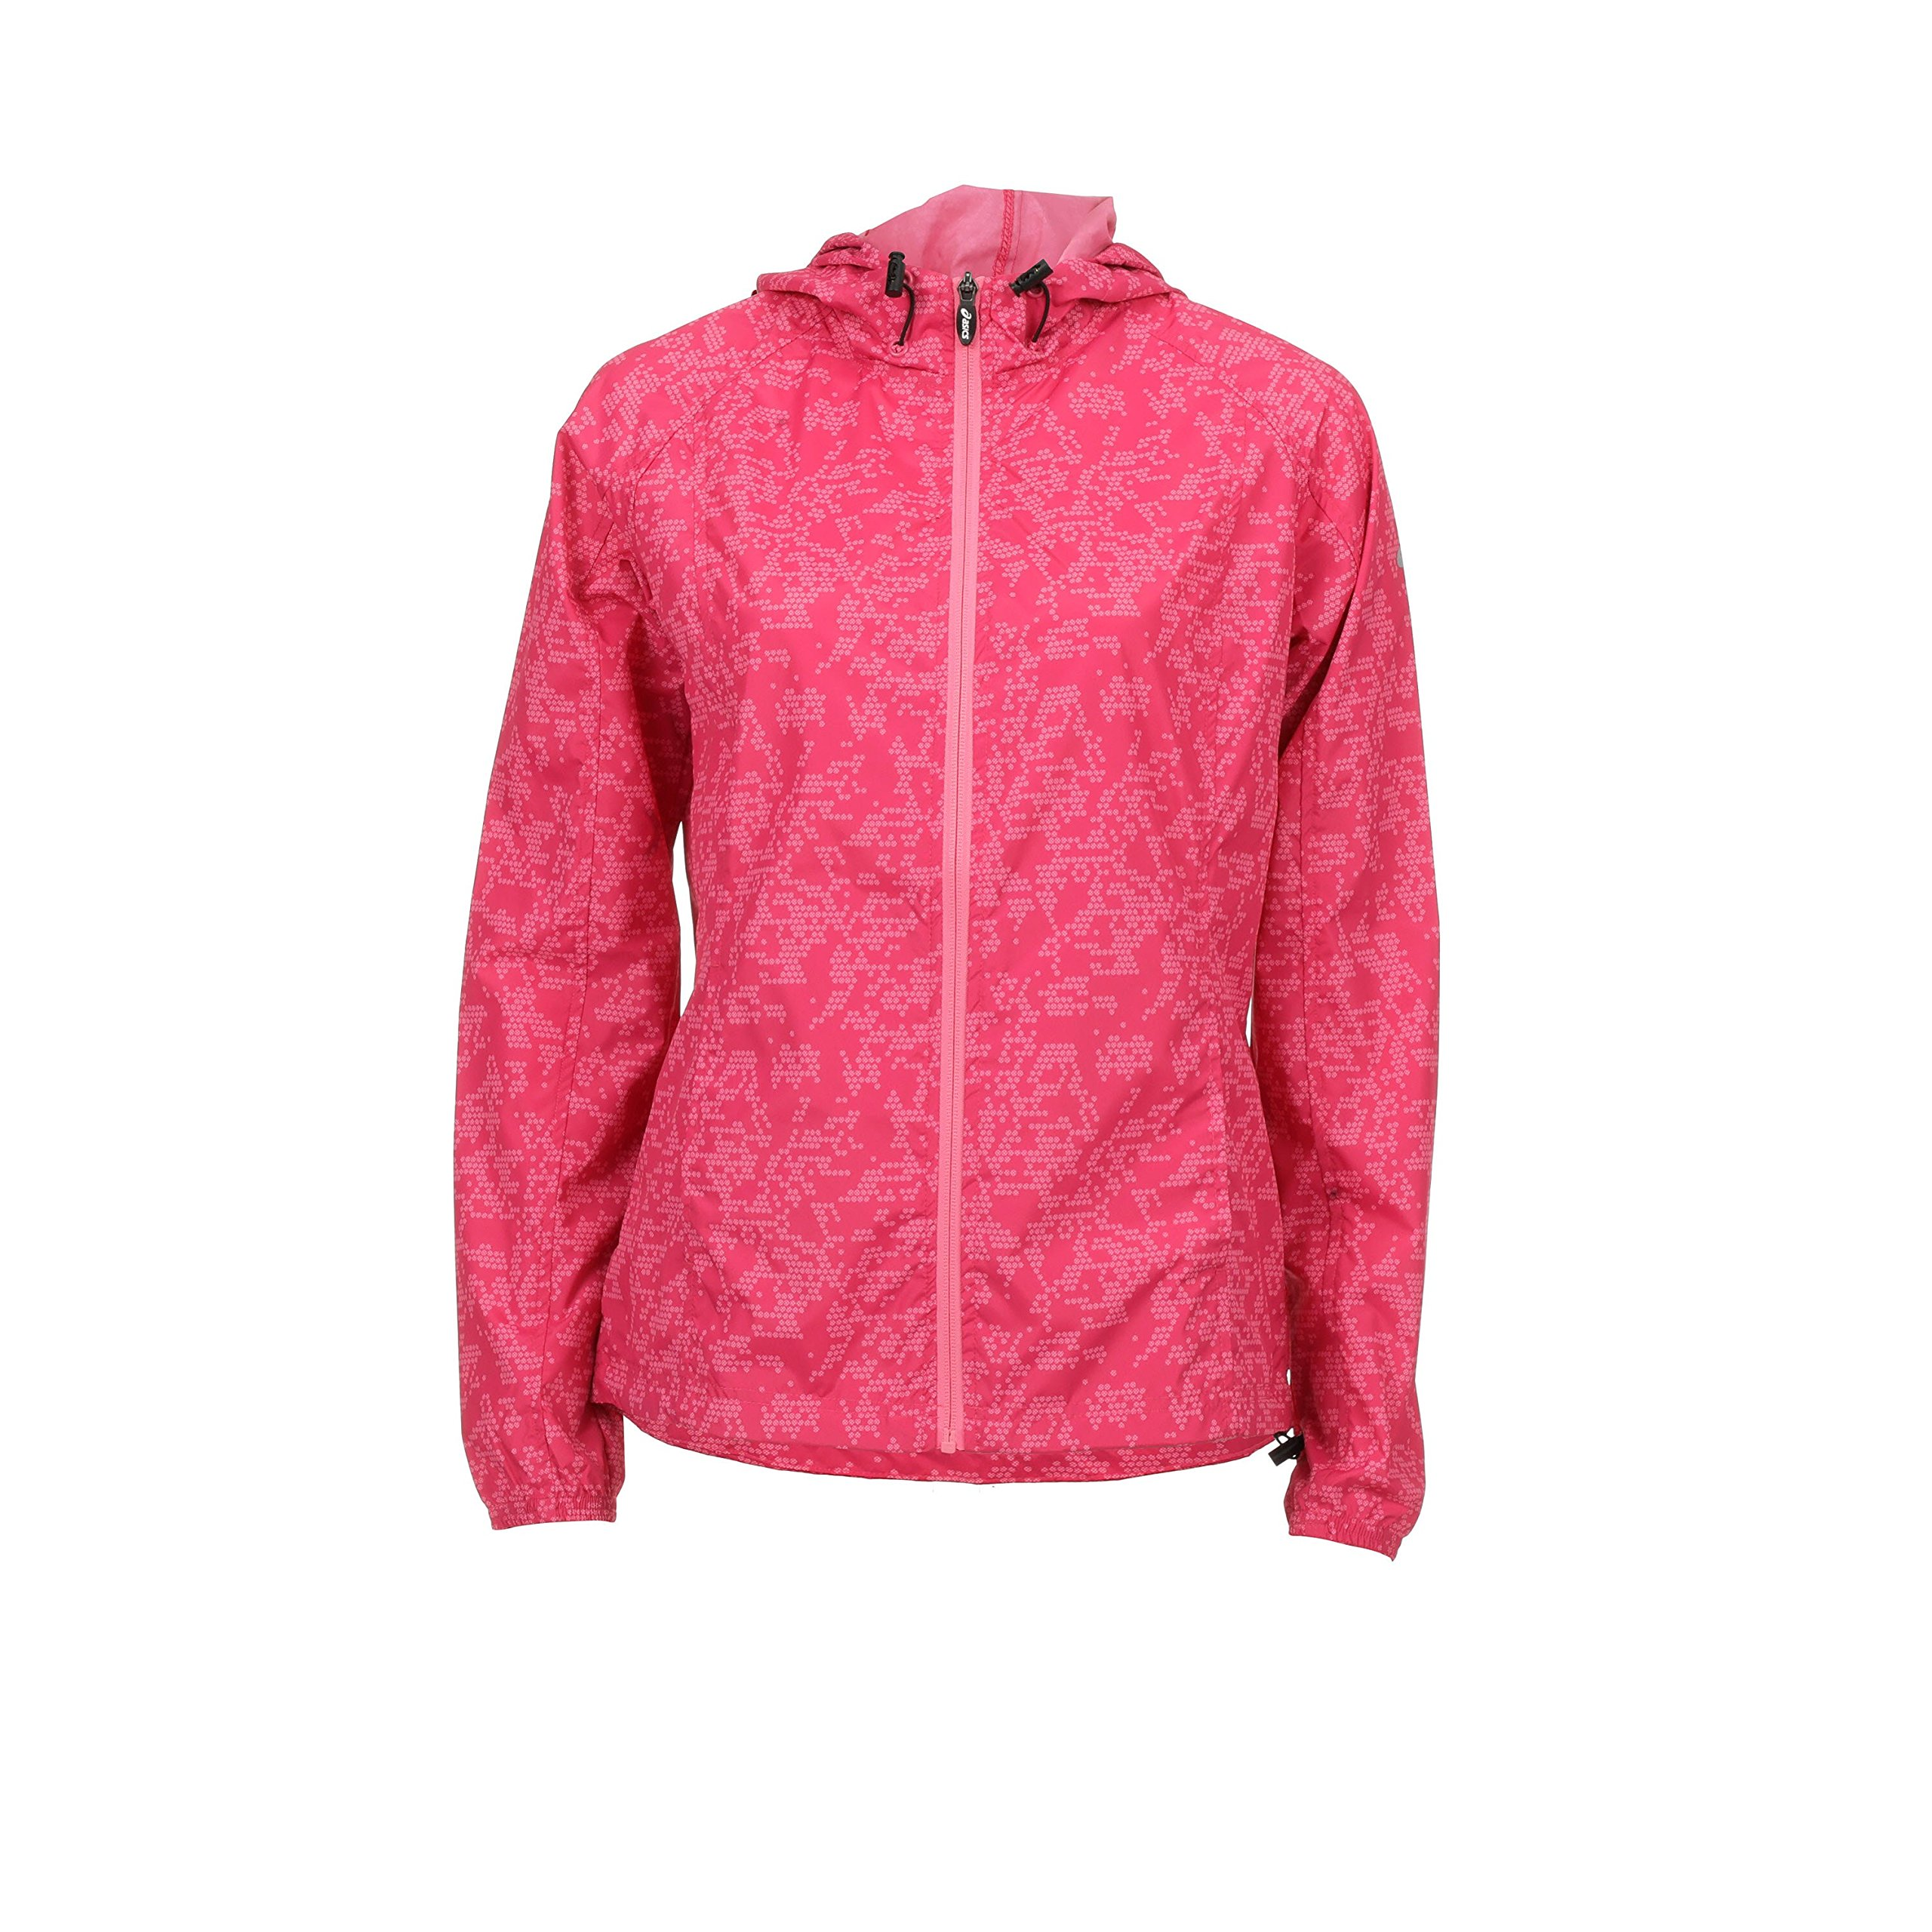 ASICS Packable Running Jacket (Women's)